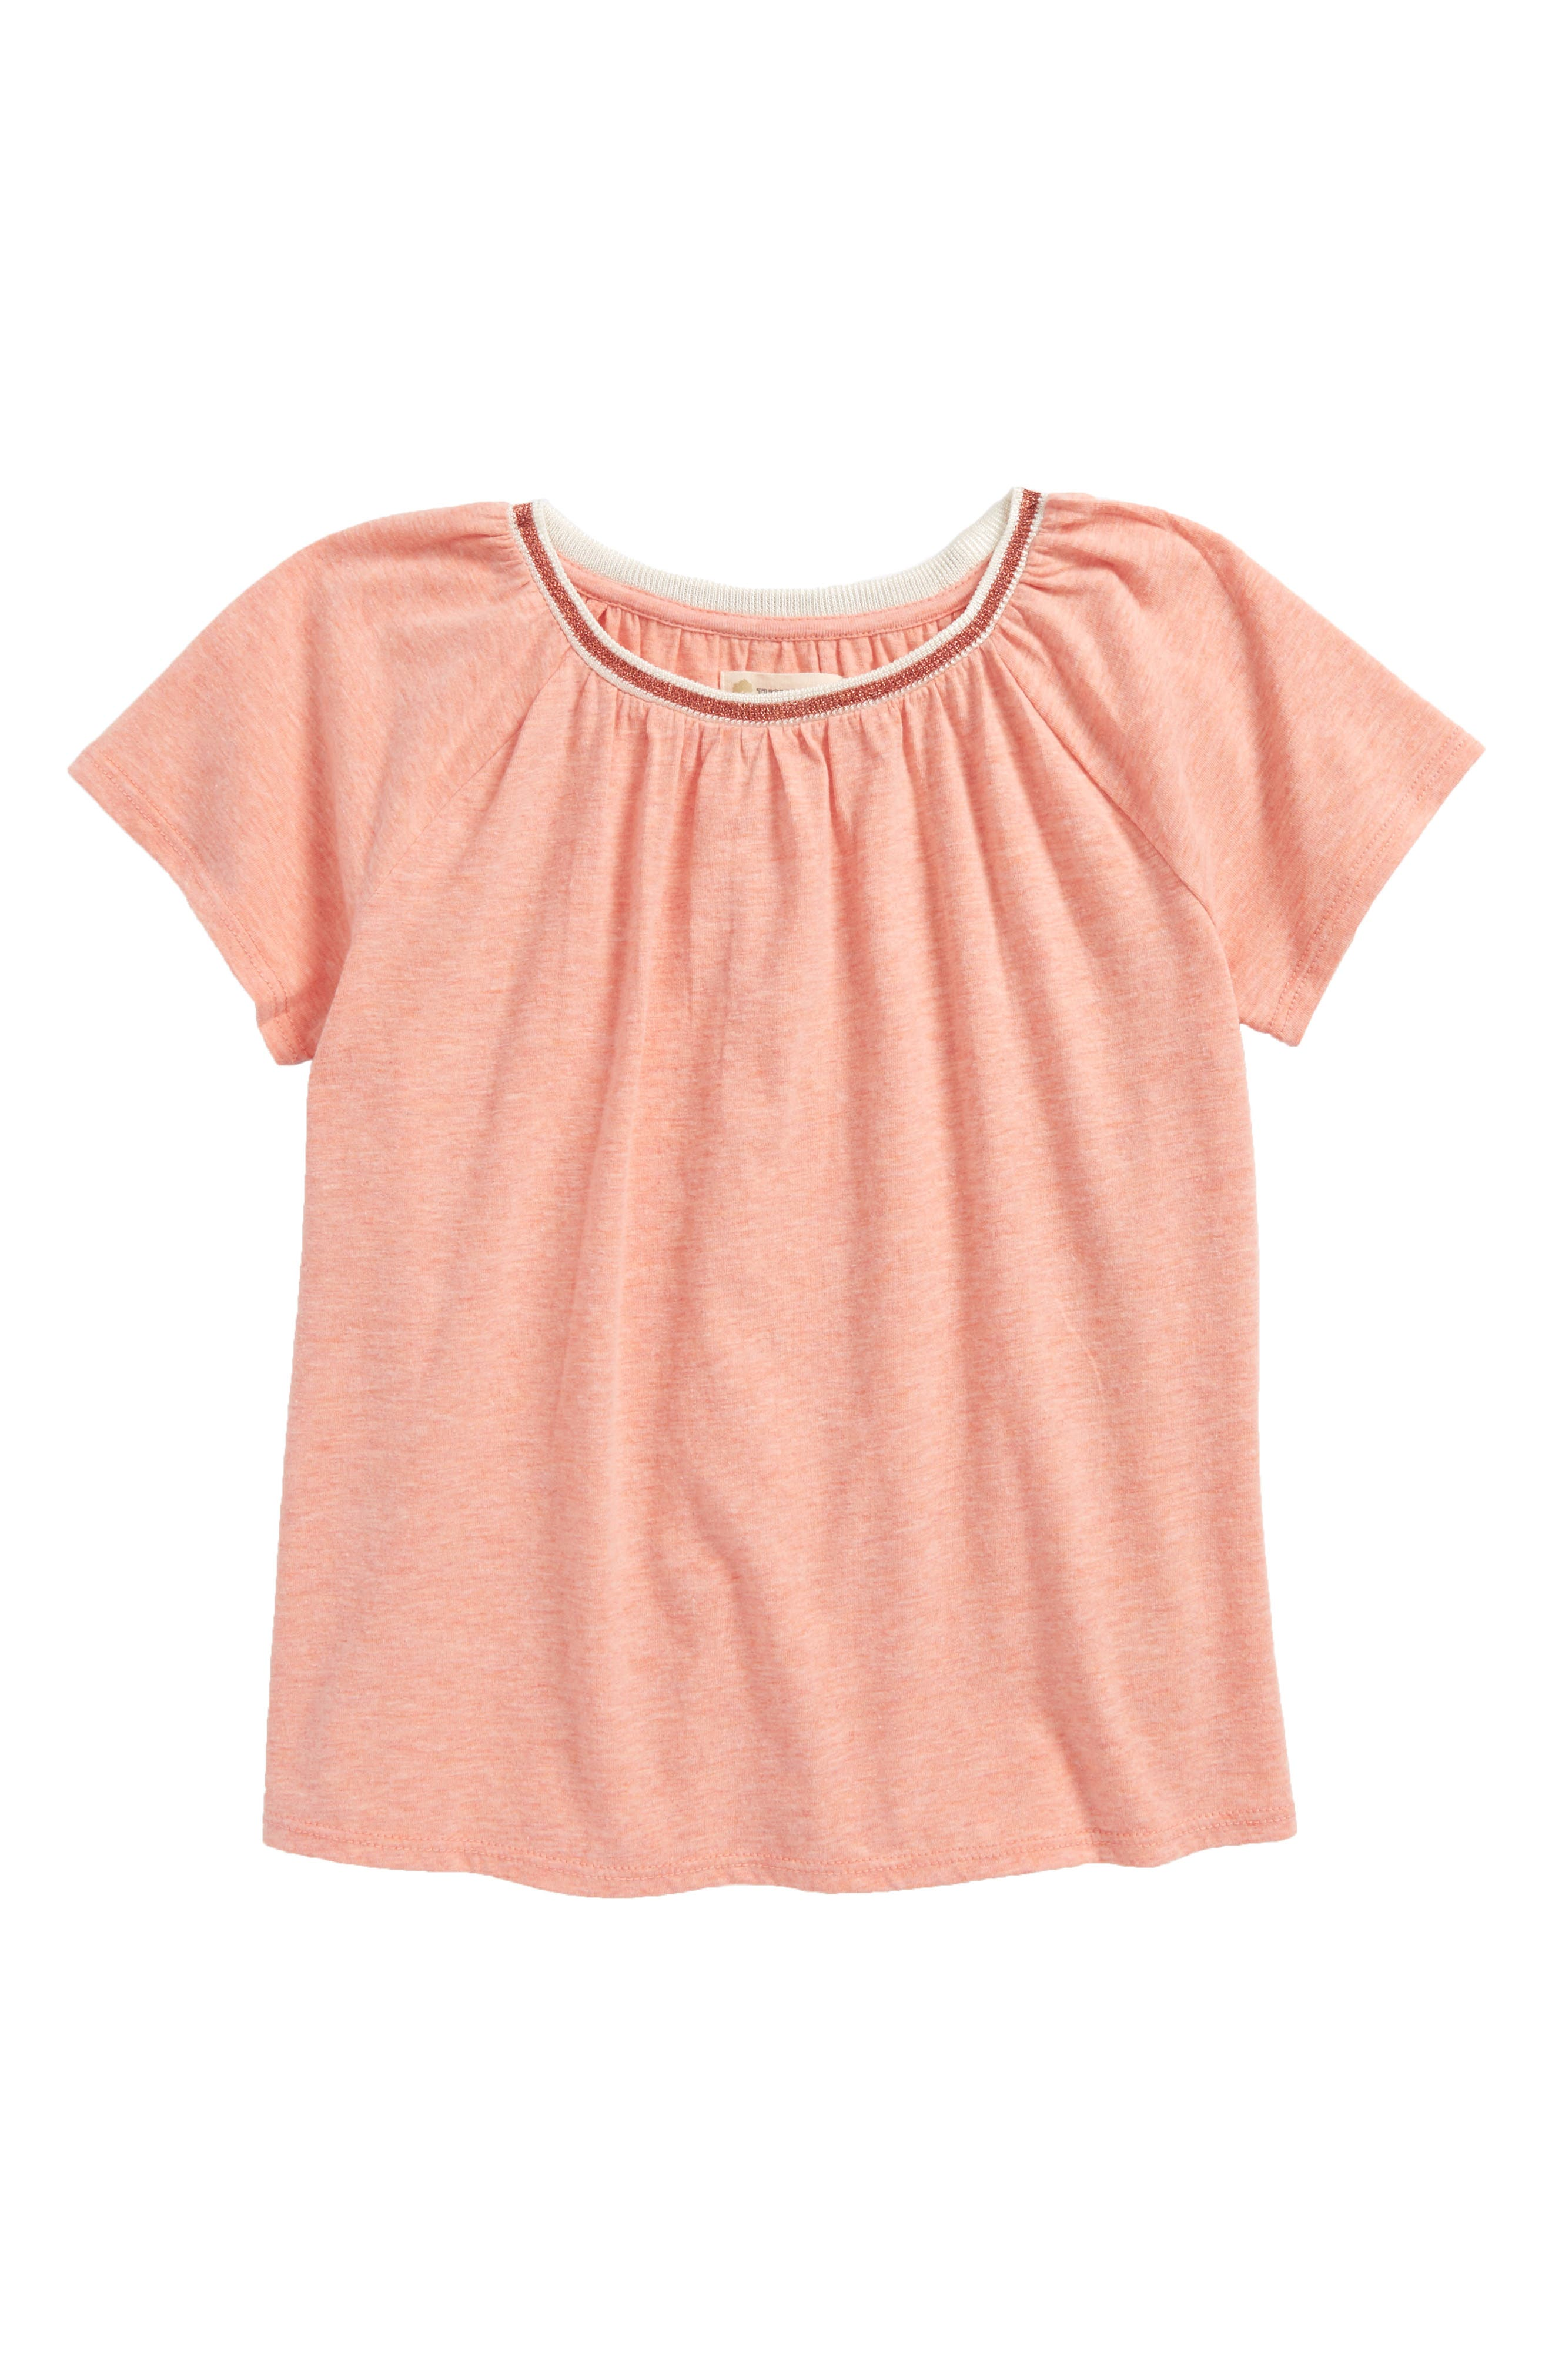 Essential Tee,                         Main,                         color, Coral Pink Heather